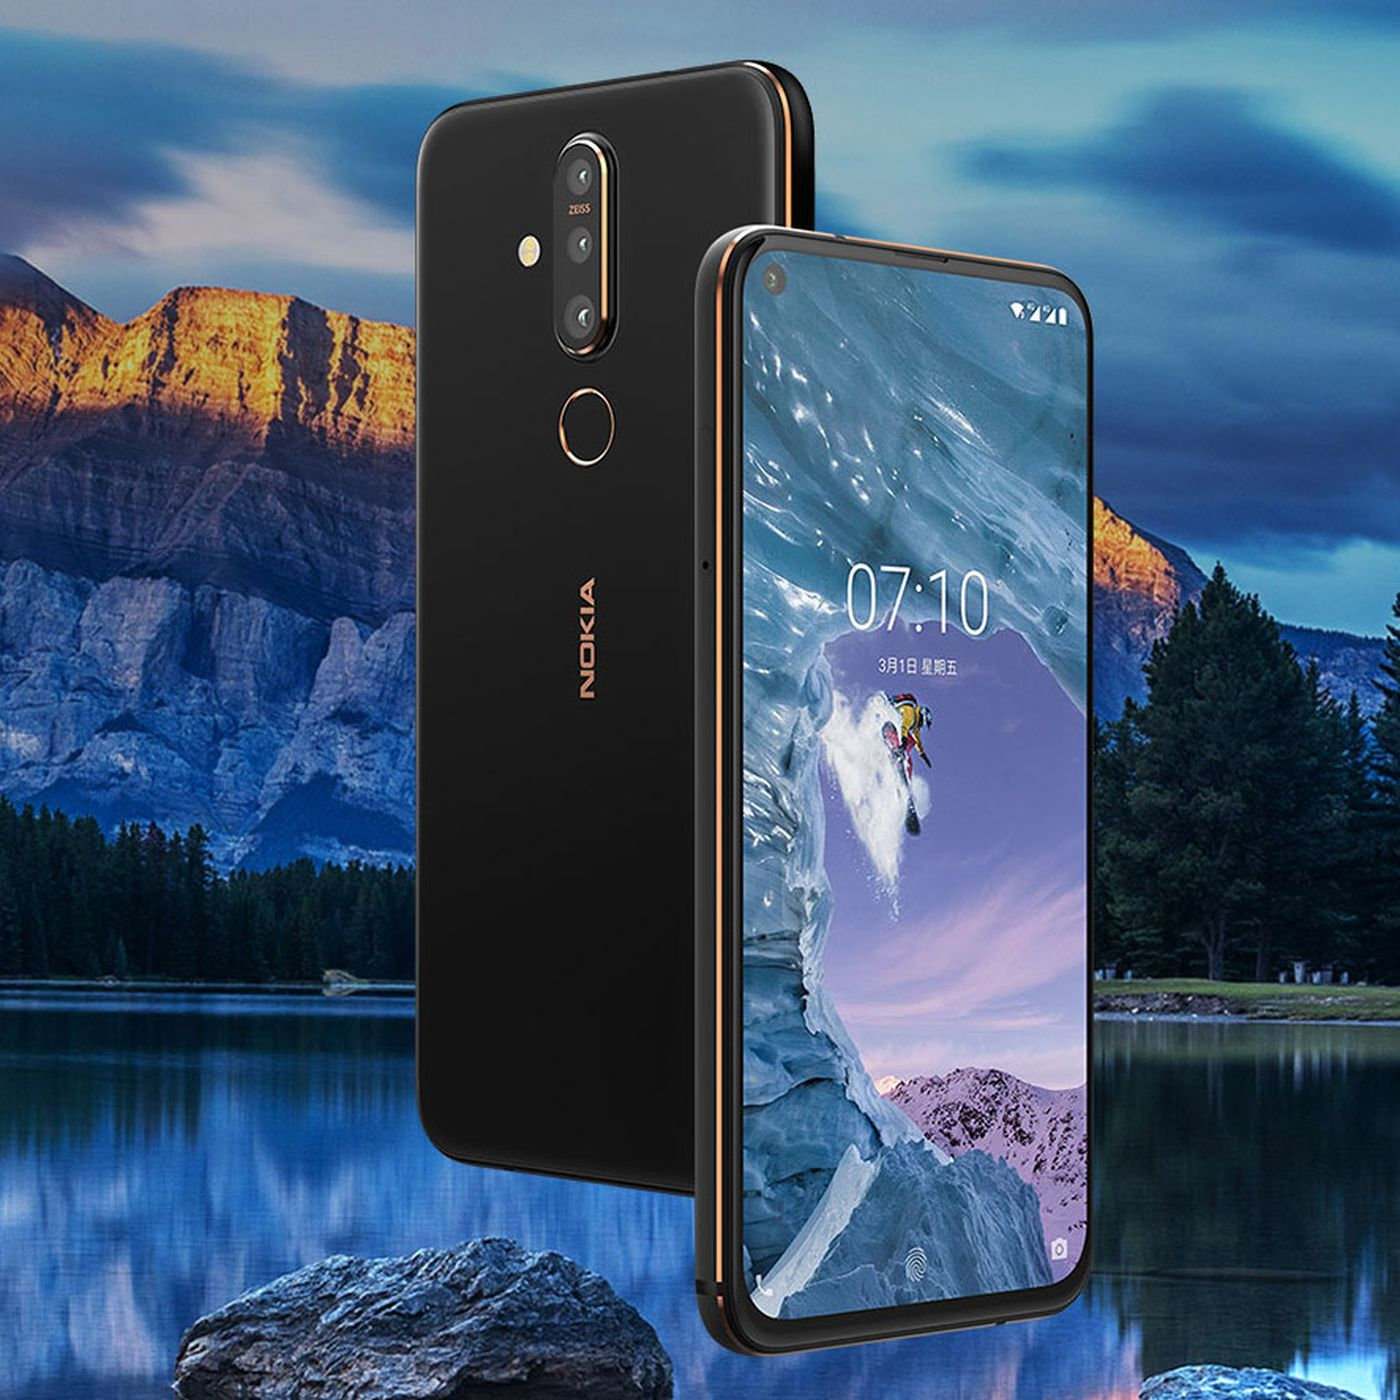 Nokia X71 with 48-megapixel camera and hole-punch display